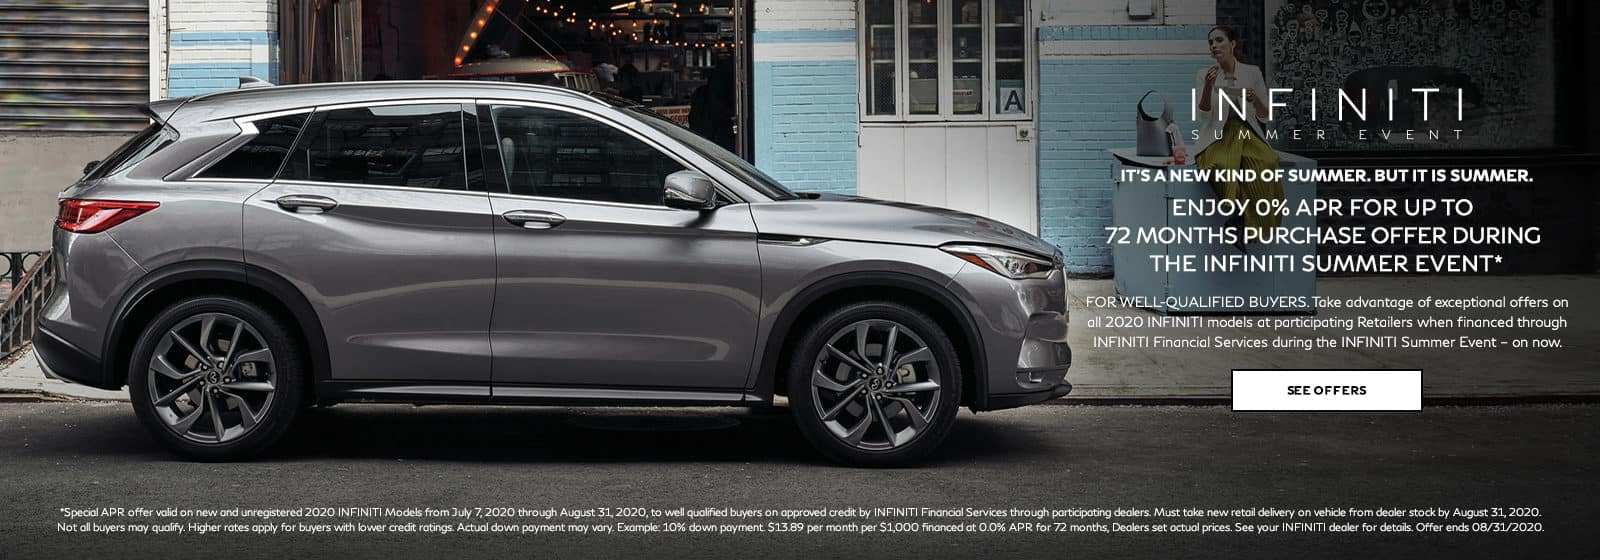 INFINITI Summer Event. No Payments for up to 90 Days on purchase or lease of all 2020 INFINITI Models. Plus 0% APR for up to 72 months purchase offer. For well-qualified buyers. Restrictions may apply. See retailer for complete details. Offer ends July 6th, 2020.